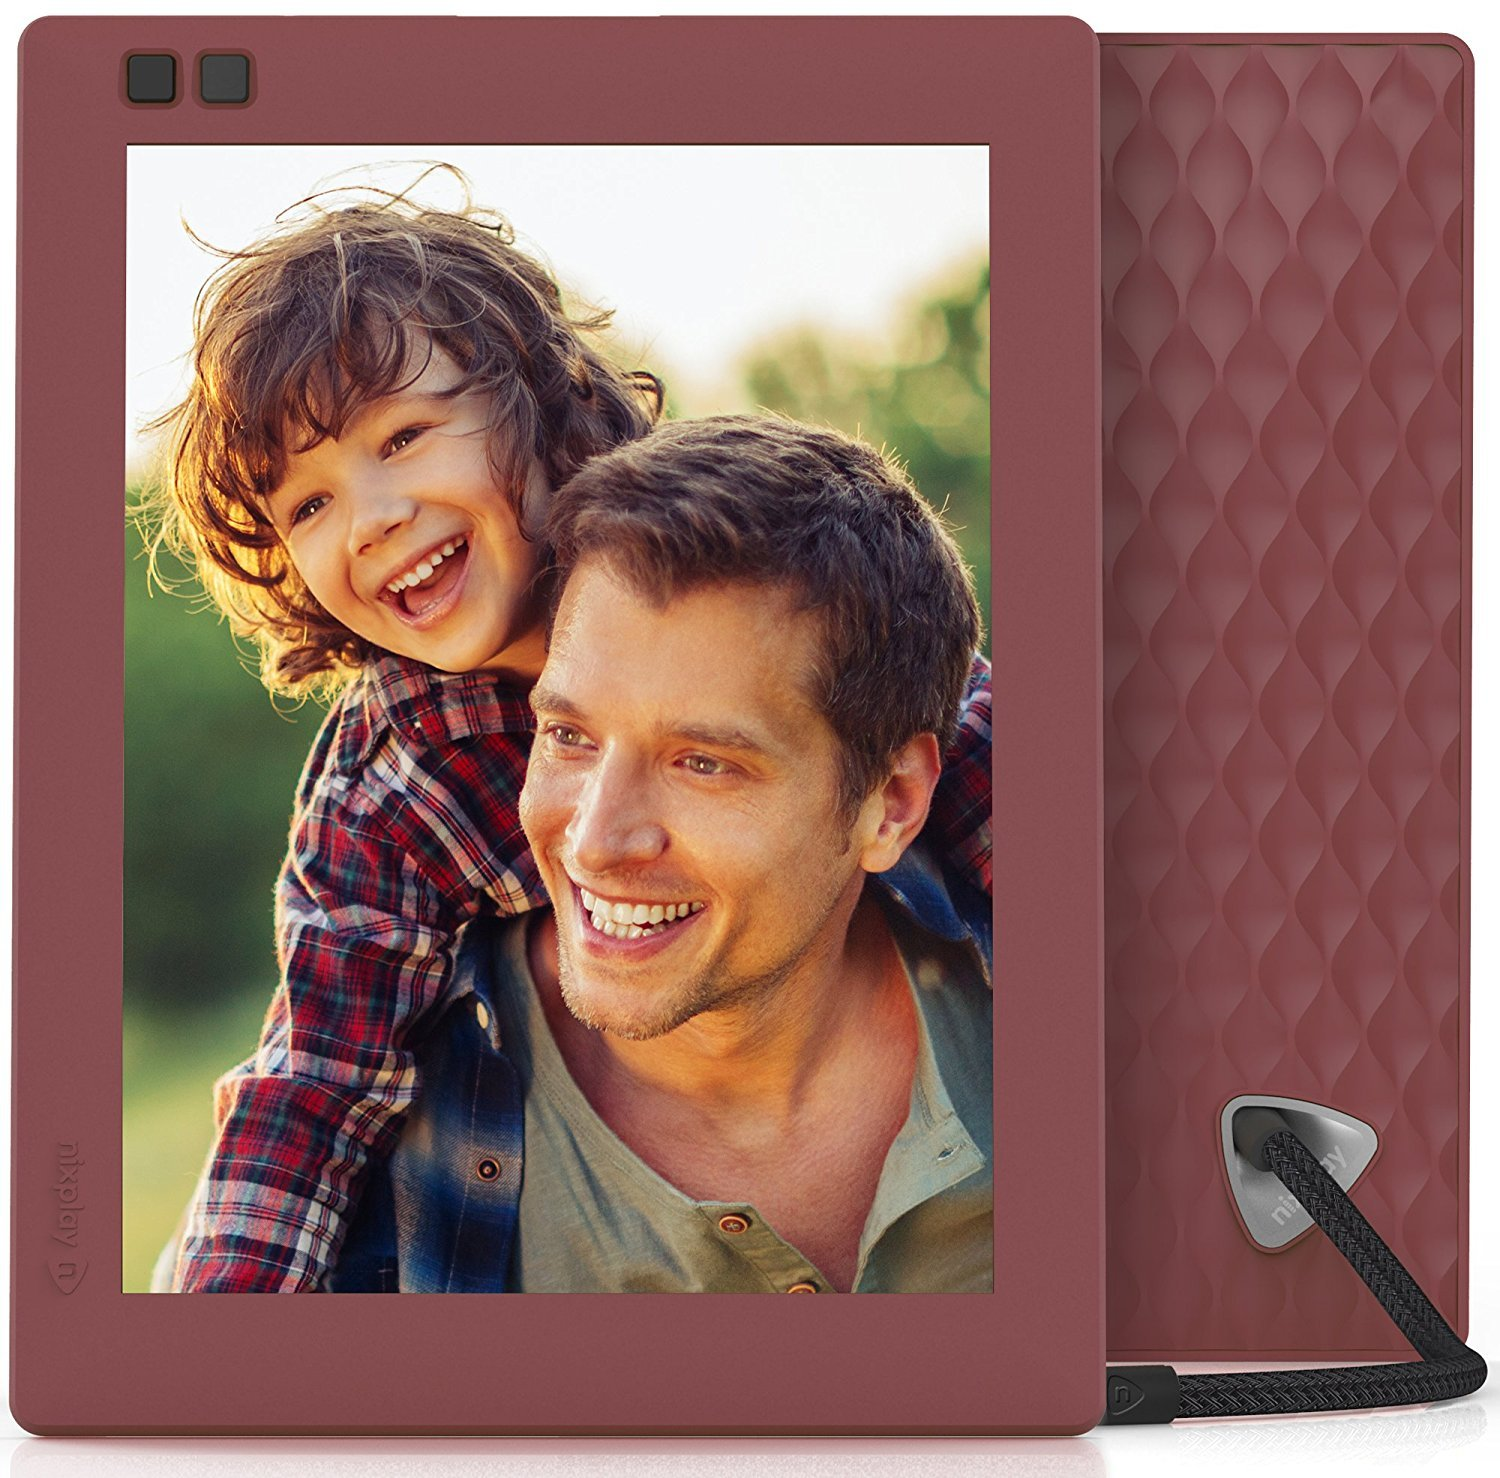 Nixplay Seed 8 inch WiFi Digital Photo Frame - Mulberry by nixplay (Image #3)